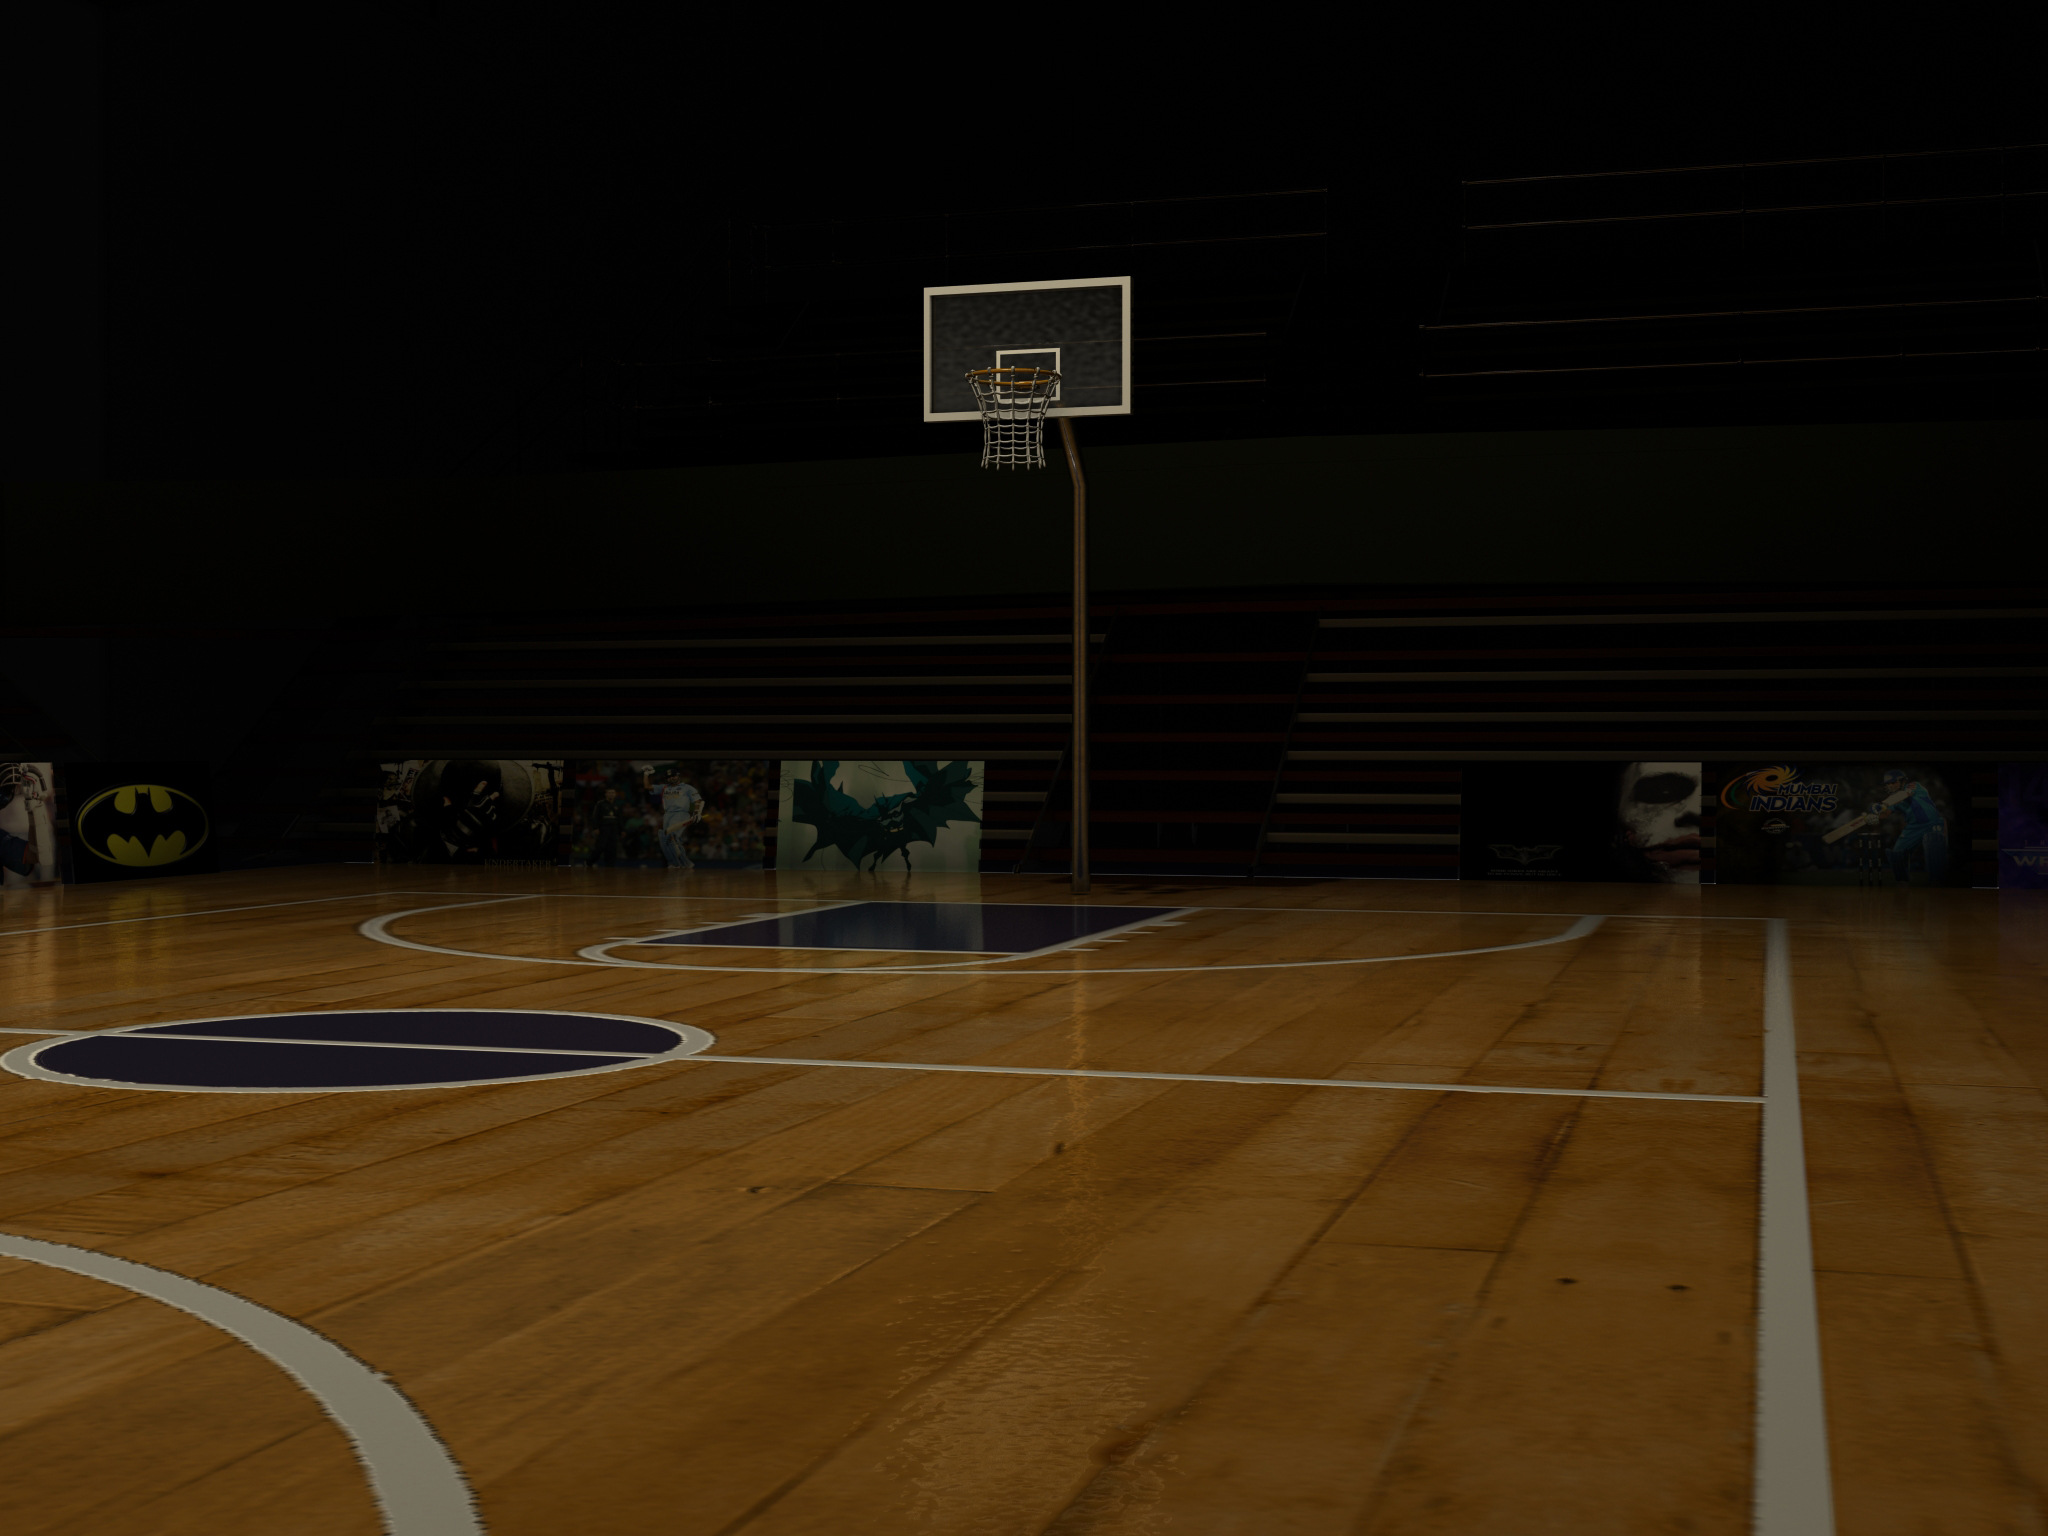 Basketball court dimensions nba driverlayer search engine for Indoor basketball court size